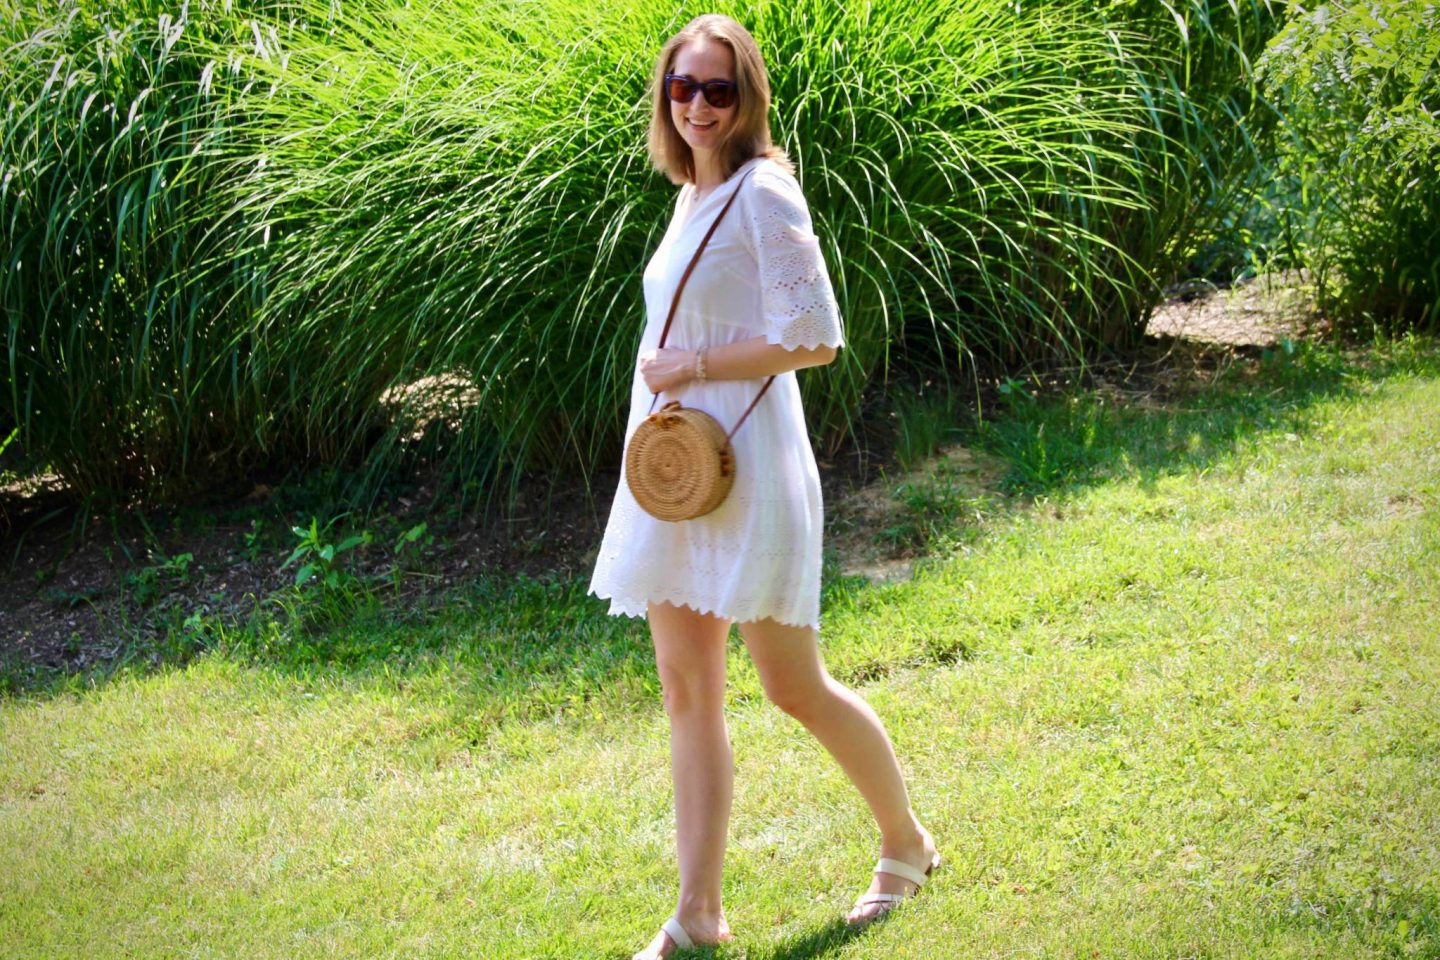 How to accessorize a white dress with a straw purse & Tory Burch sunglasses ... the spectacular adventurer